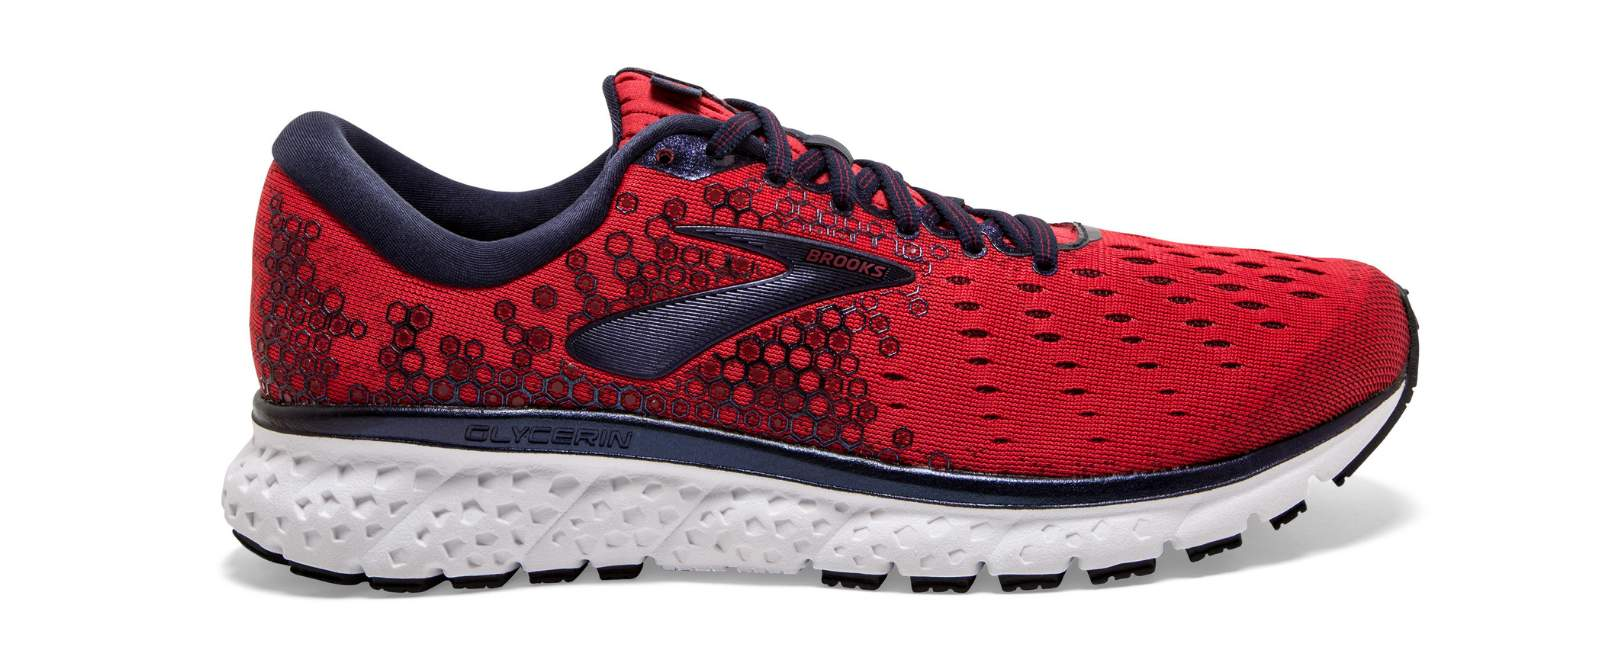 Brooks Glycerin 17 lateral